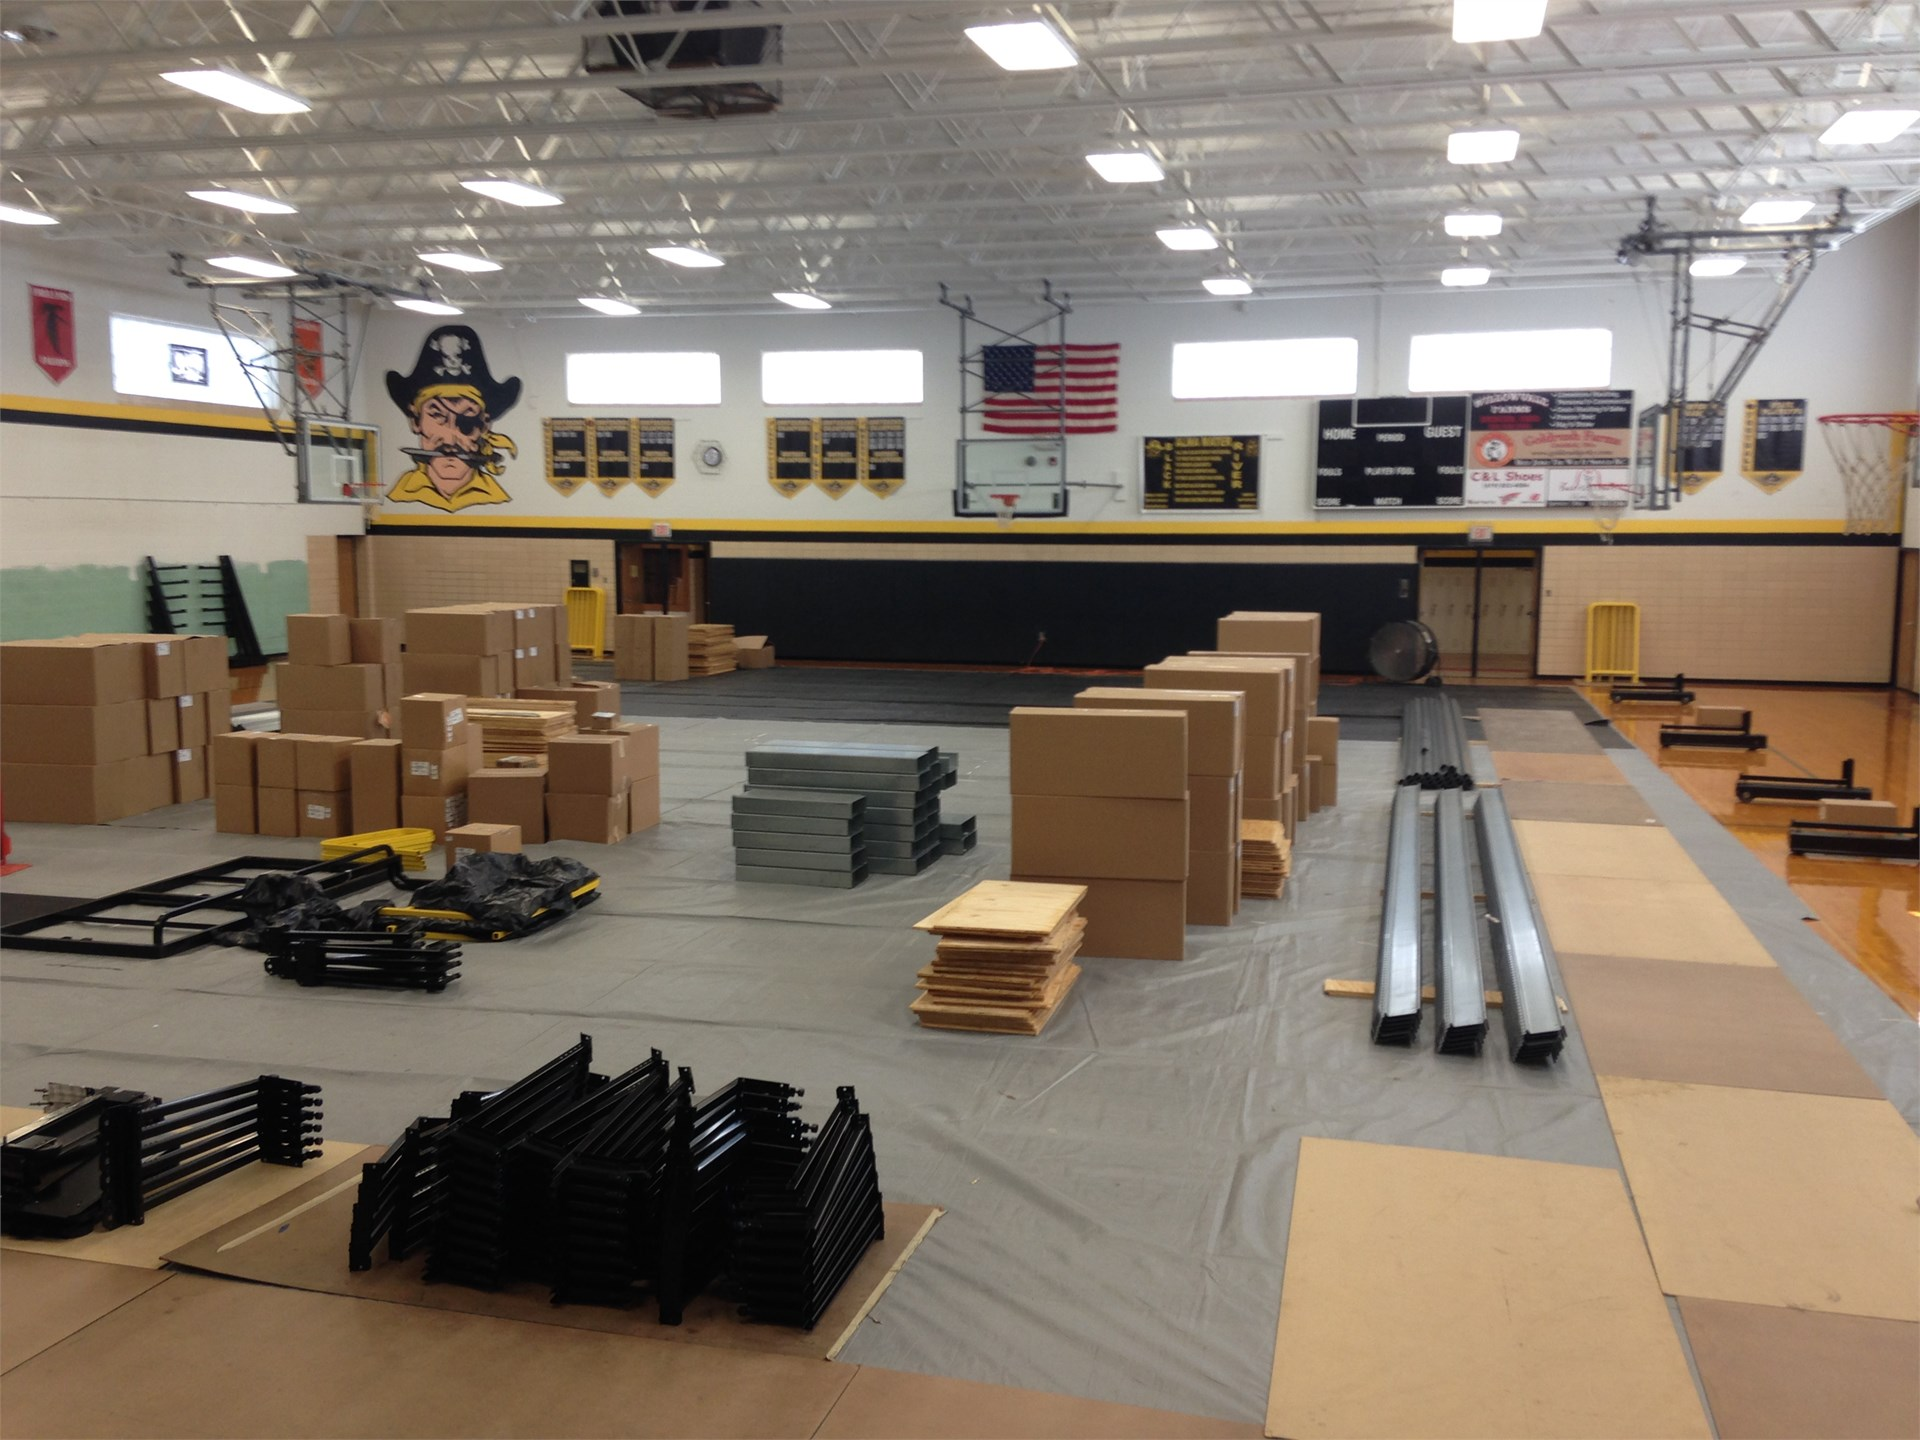 Bleacher parts as installation is progressing